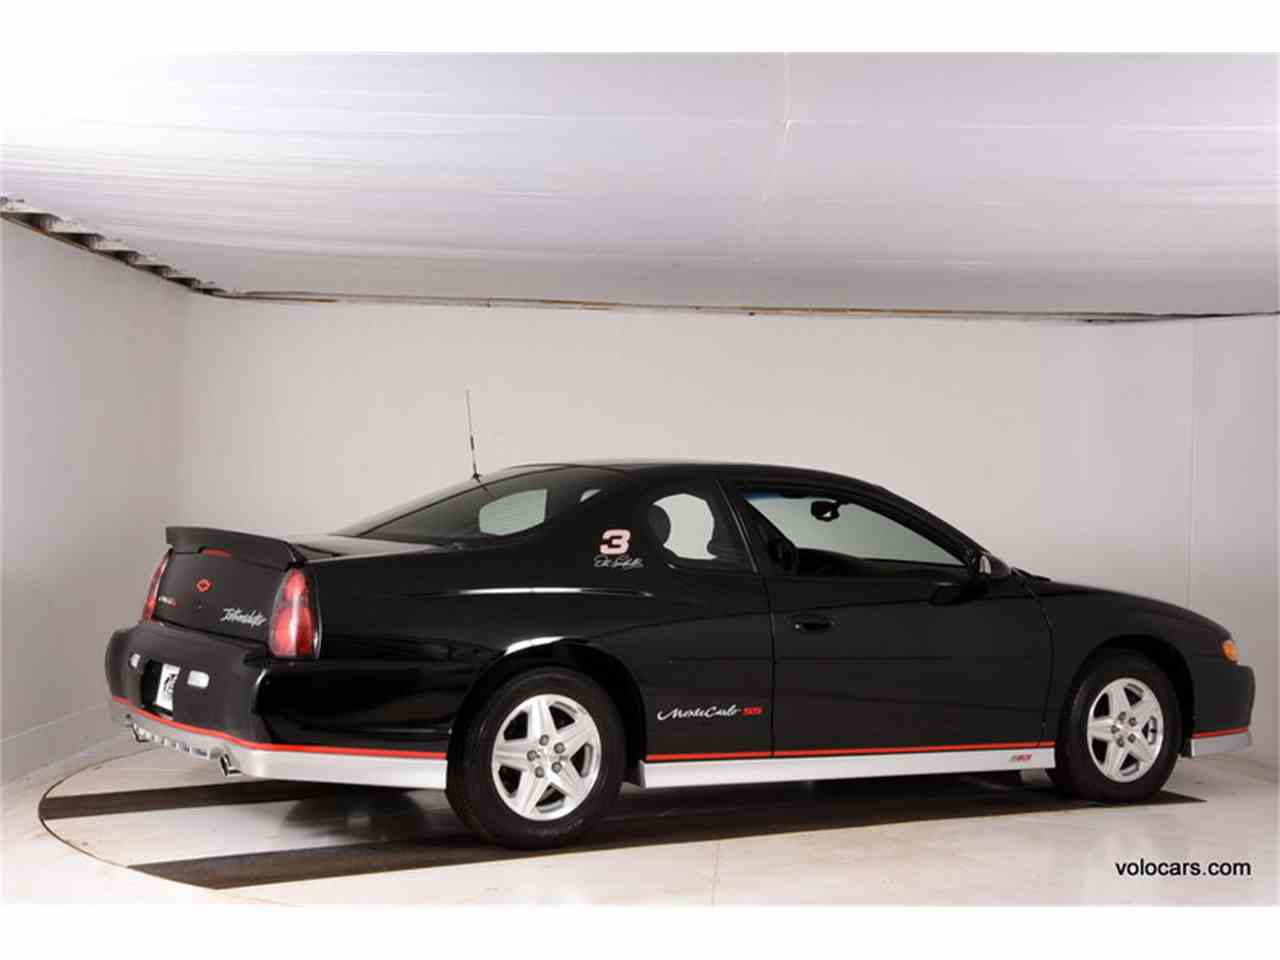 Large Picture of '02 Chevrolet Monte Carlo SS - $21,998.00 - MZ7T